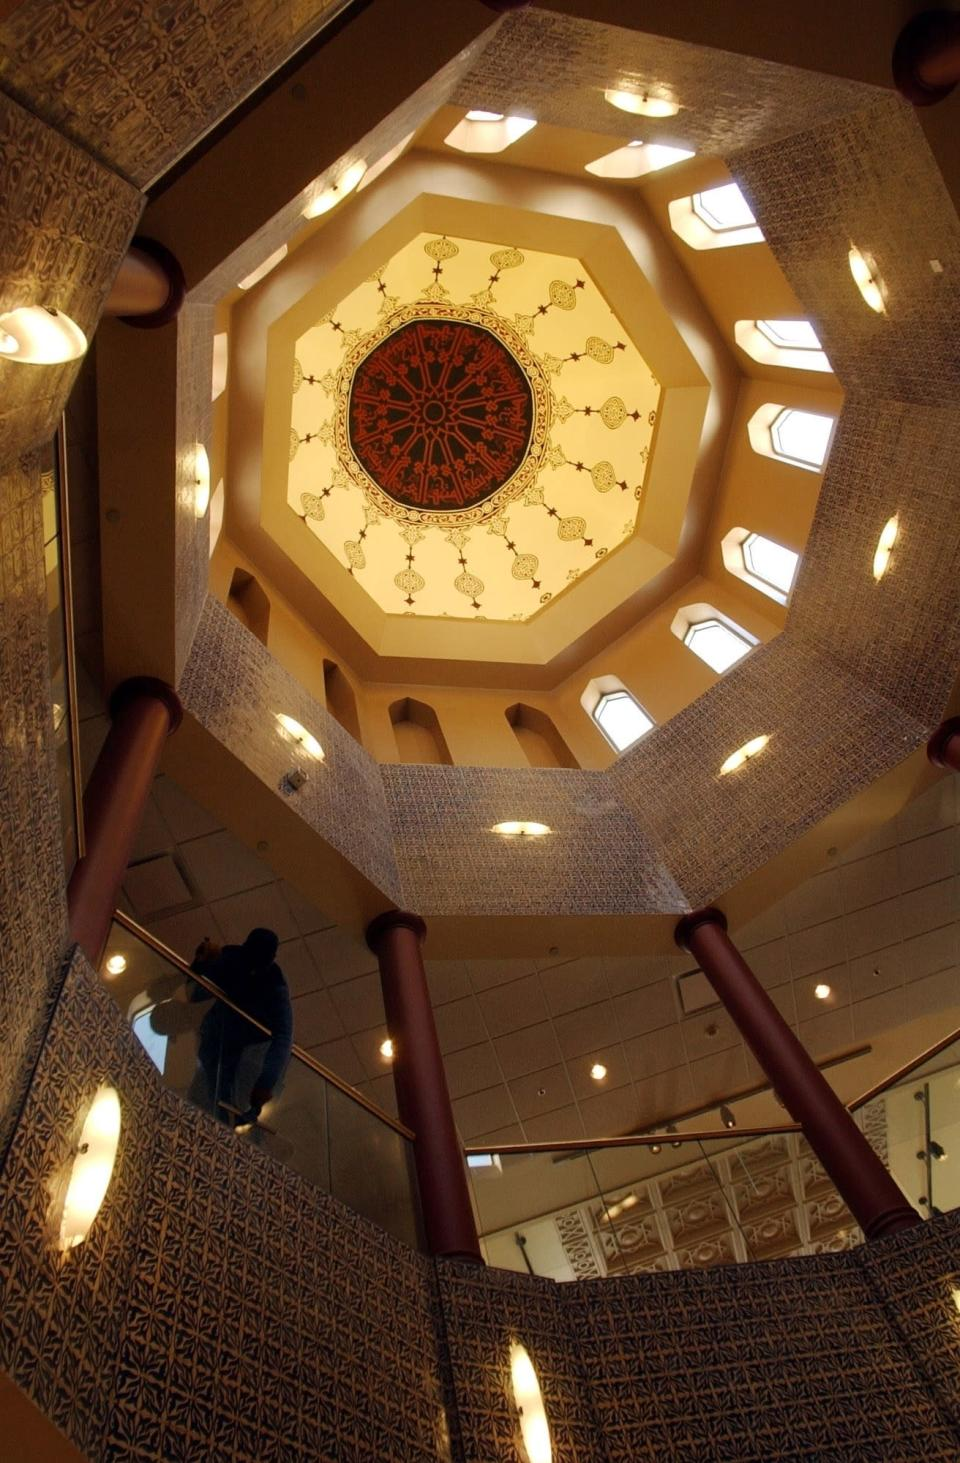 FILE- The interior of the Islamic-style dome that forms part of the Arab American National Museum appears in Dearborn, Mich. on April 15, 2005. The location is featured in a collection of mini-essays by American writers published online by the Frommer's guidebook company about places they believe helped shape and define America. (AP Photo/Carlos Osorio, File)